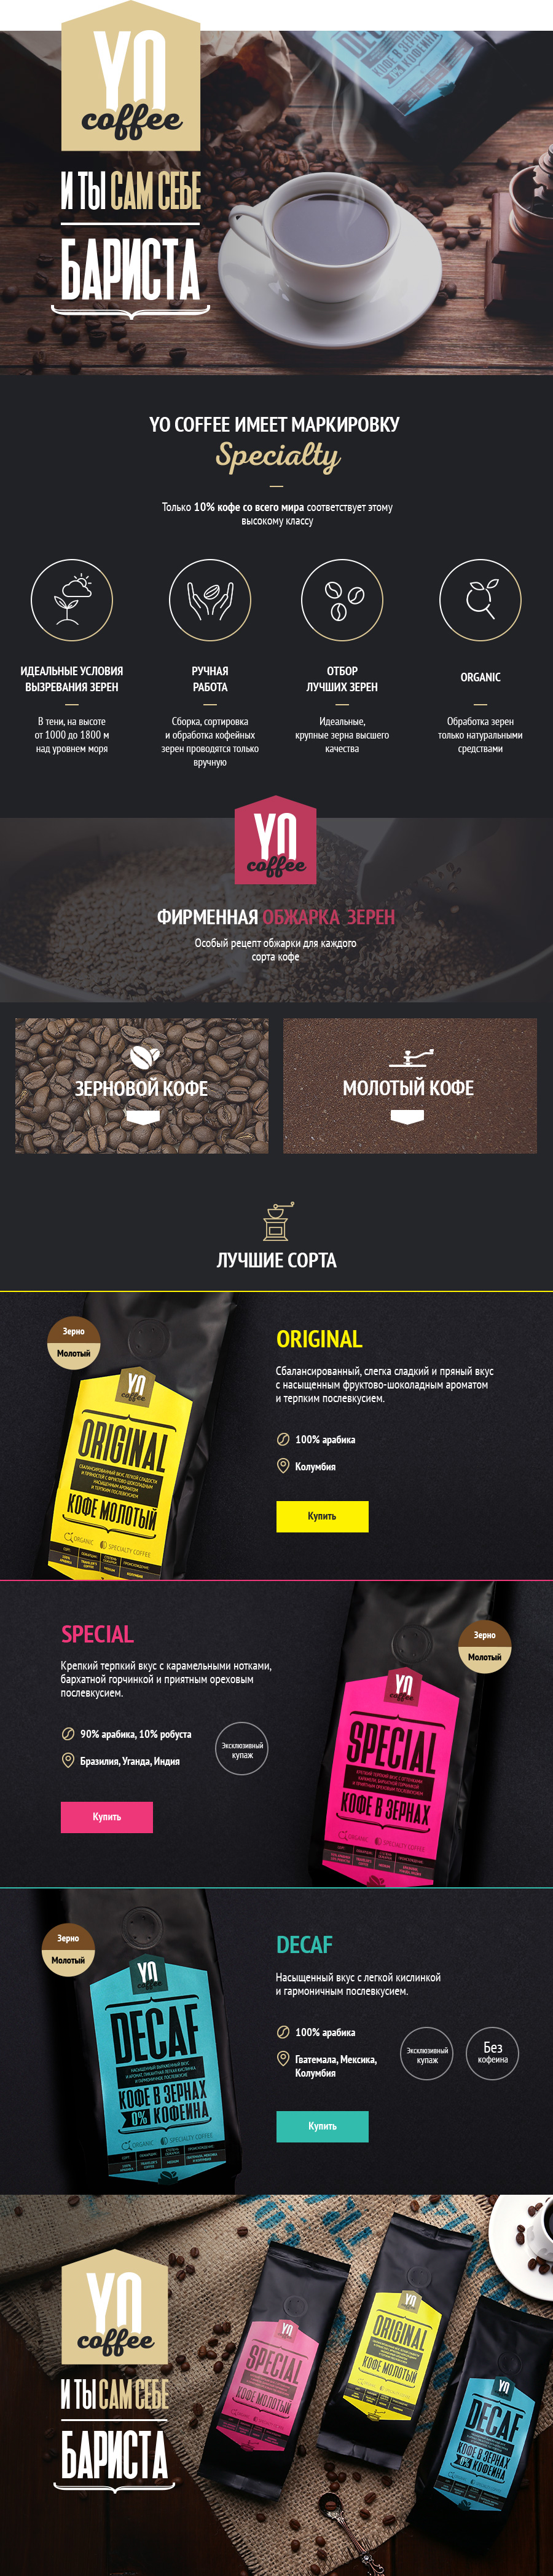 Презентация YO Coffee